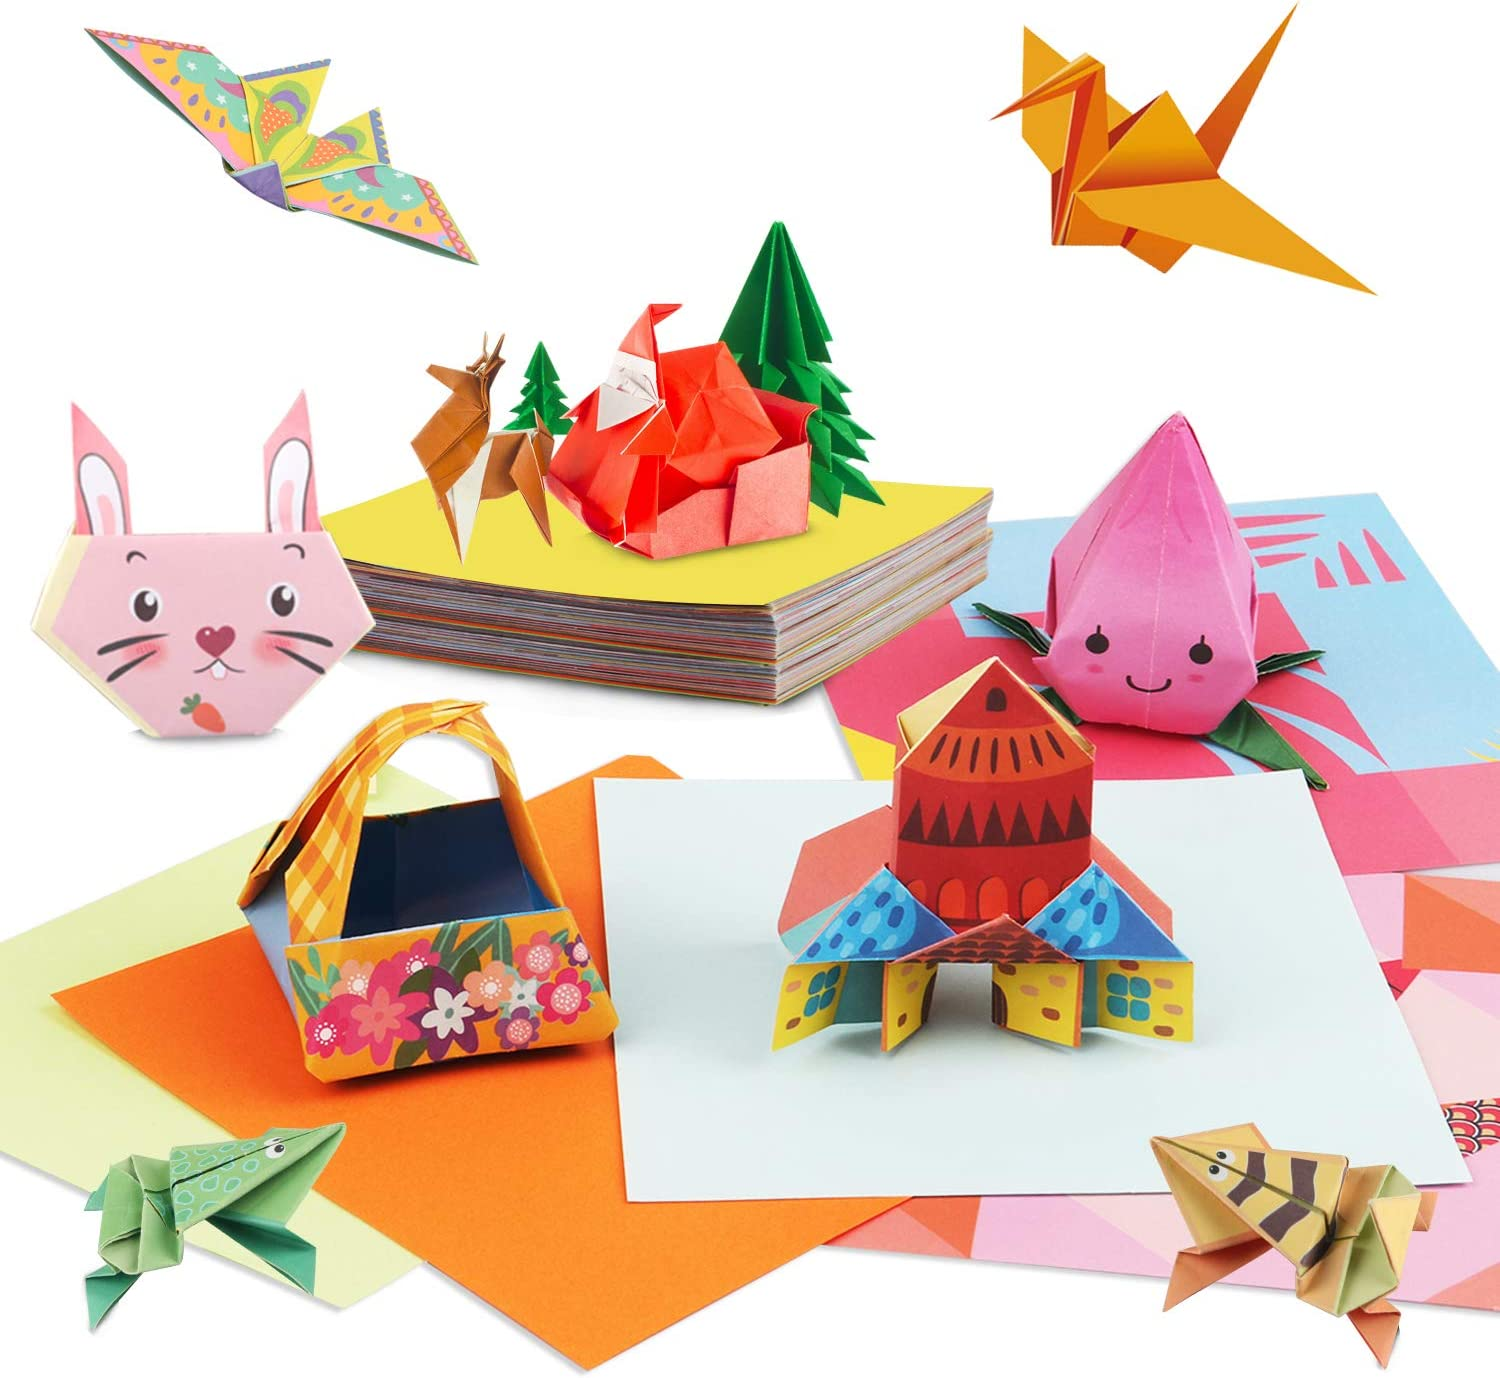 Christmas Gifts Decor Double Sided Origami Paper Craft Kits for Kids 6-12, Origami Book STEM Activities for Kids Ages 5-7 Learning Games Funny Birthday Gifts - Colored Paper 123 Paper 54 Patterns